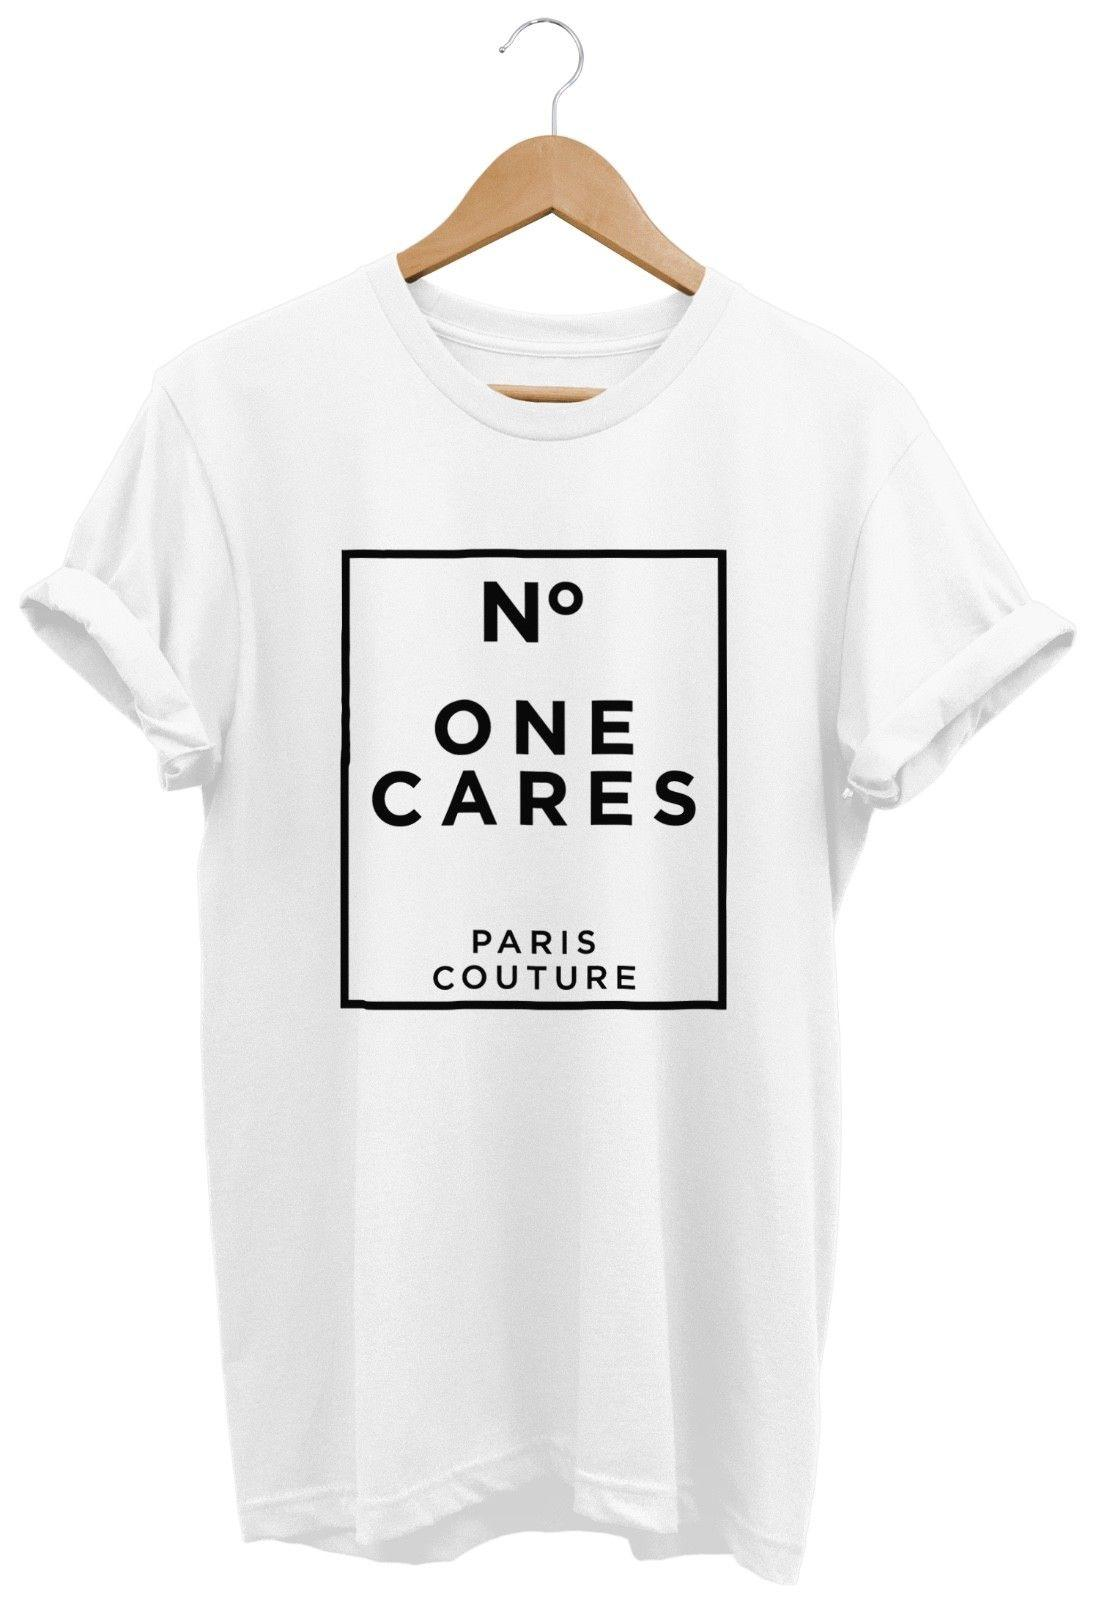 07433a25 No One Cares Paris Couture T SHIRT UNISEX WOMENS FUNNY HIPSTER FASHION  SLOGAN Funny Unisex Casual Tshirt Designs T Shirt Design Template From  Fastshipdirect ...